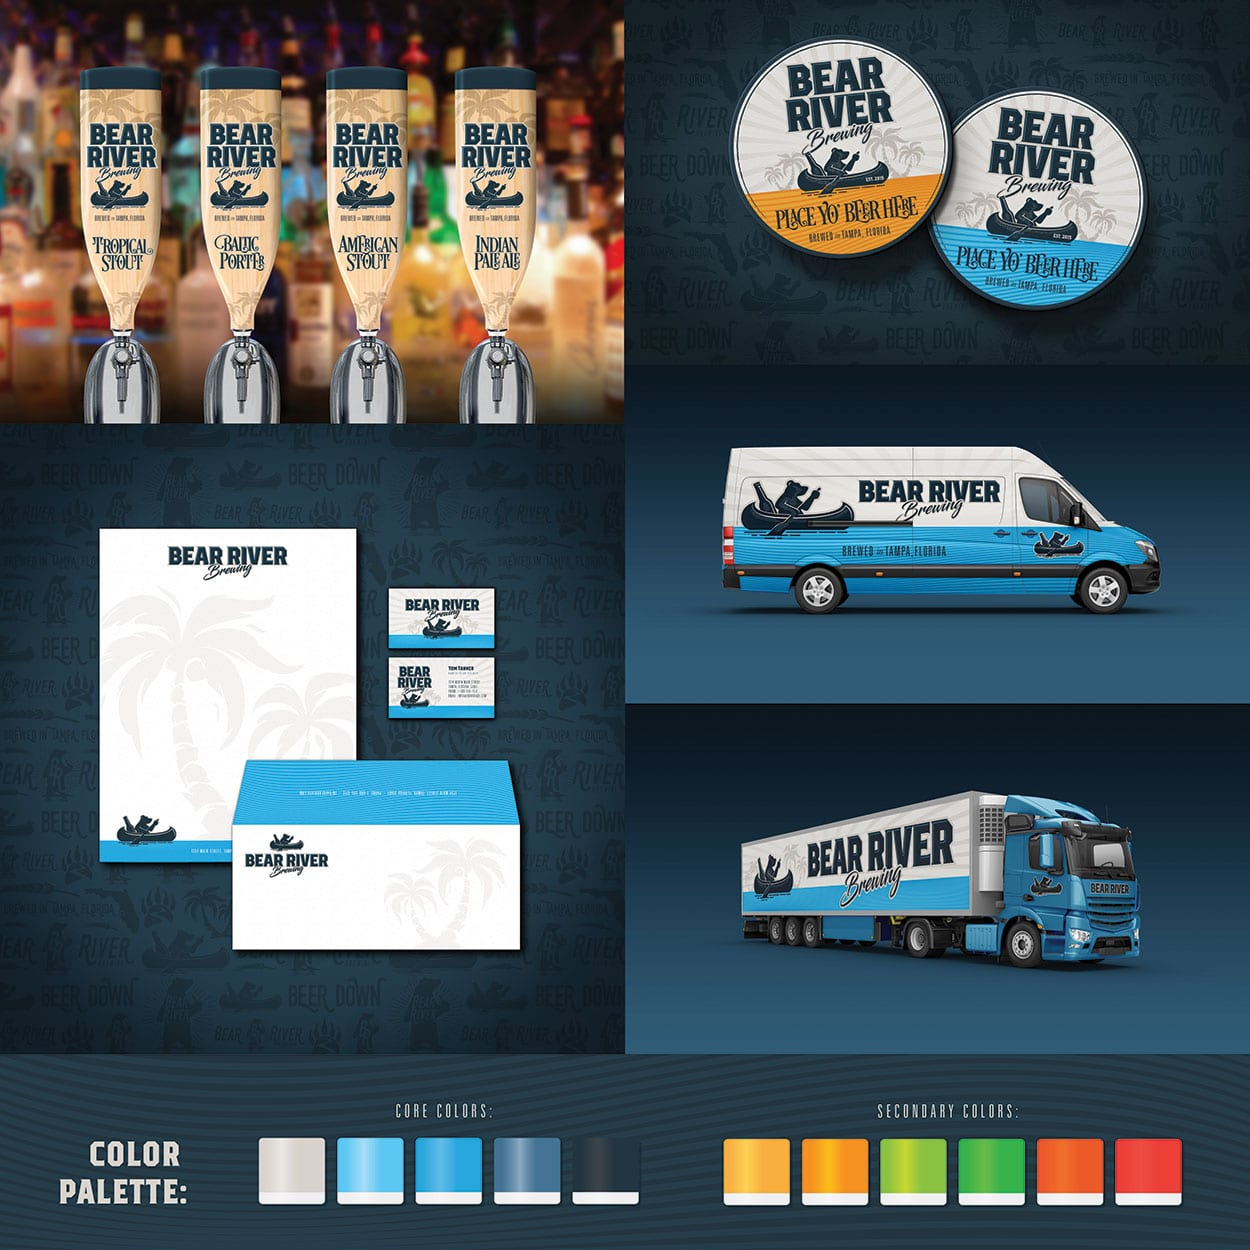 Bear River Brewing Identity Design